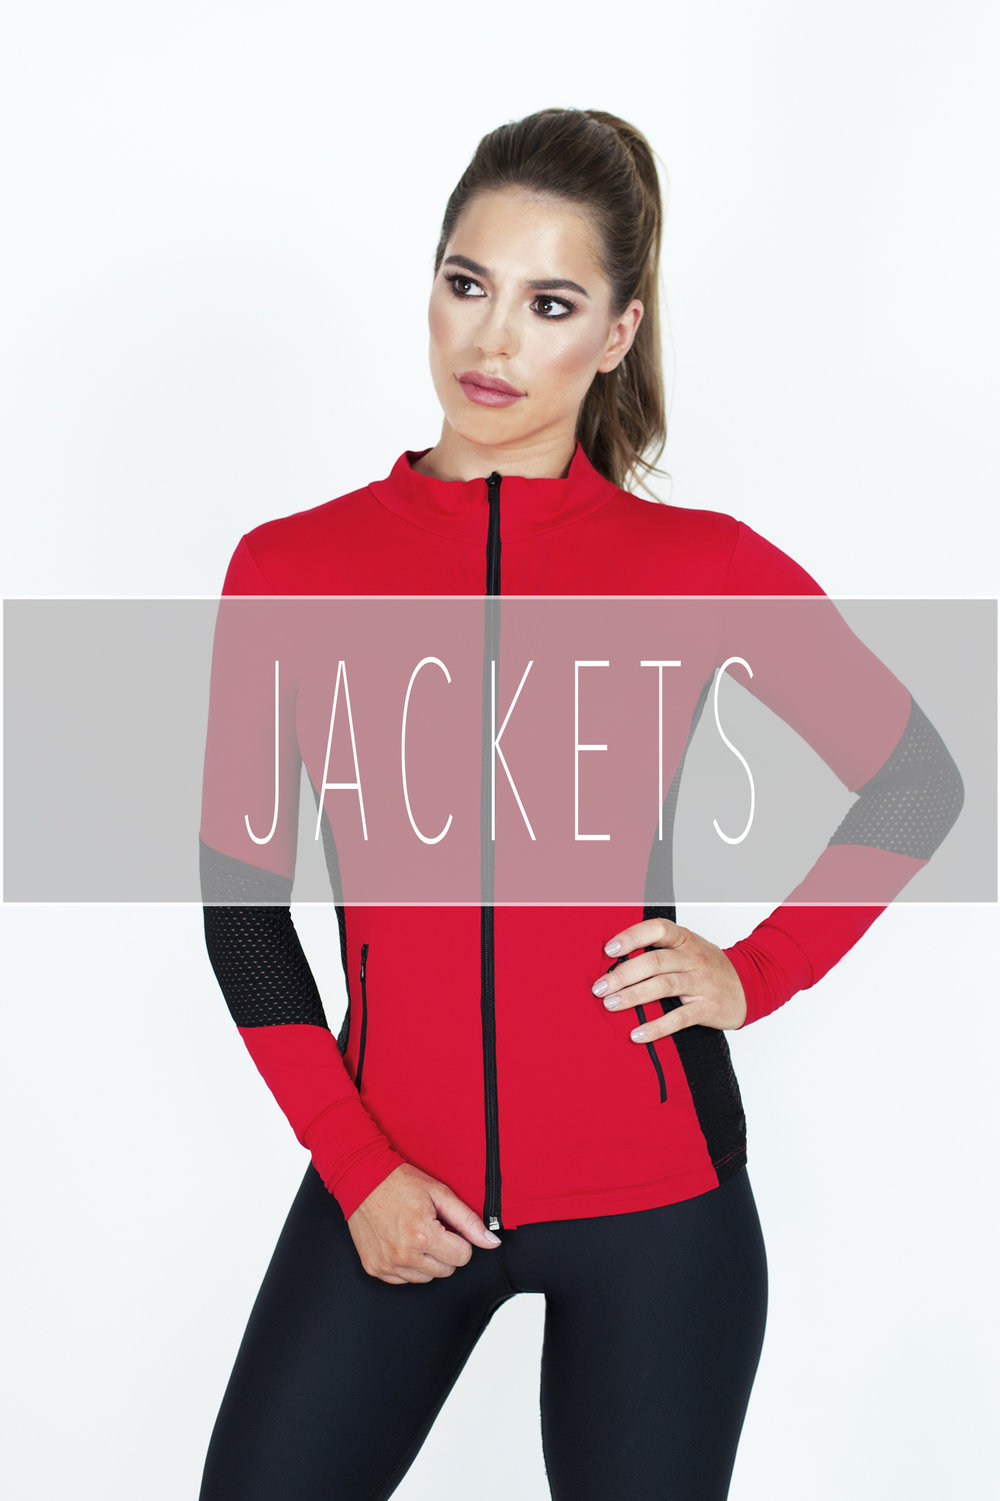 jackets-product-section